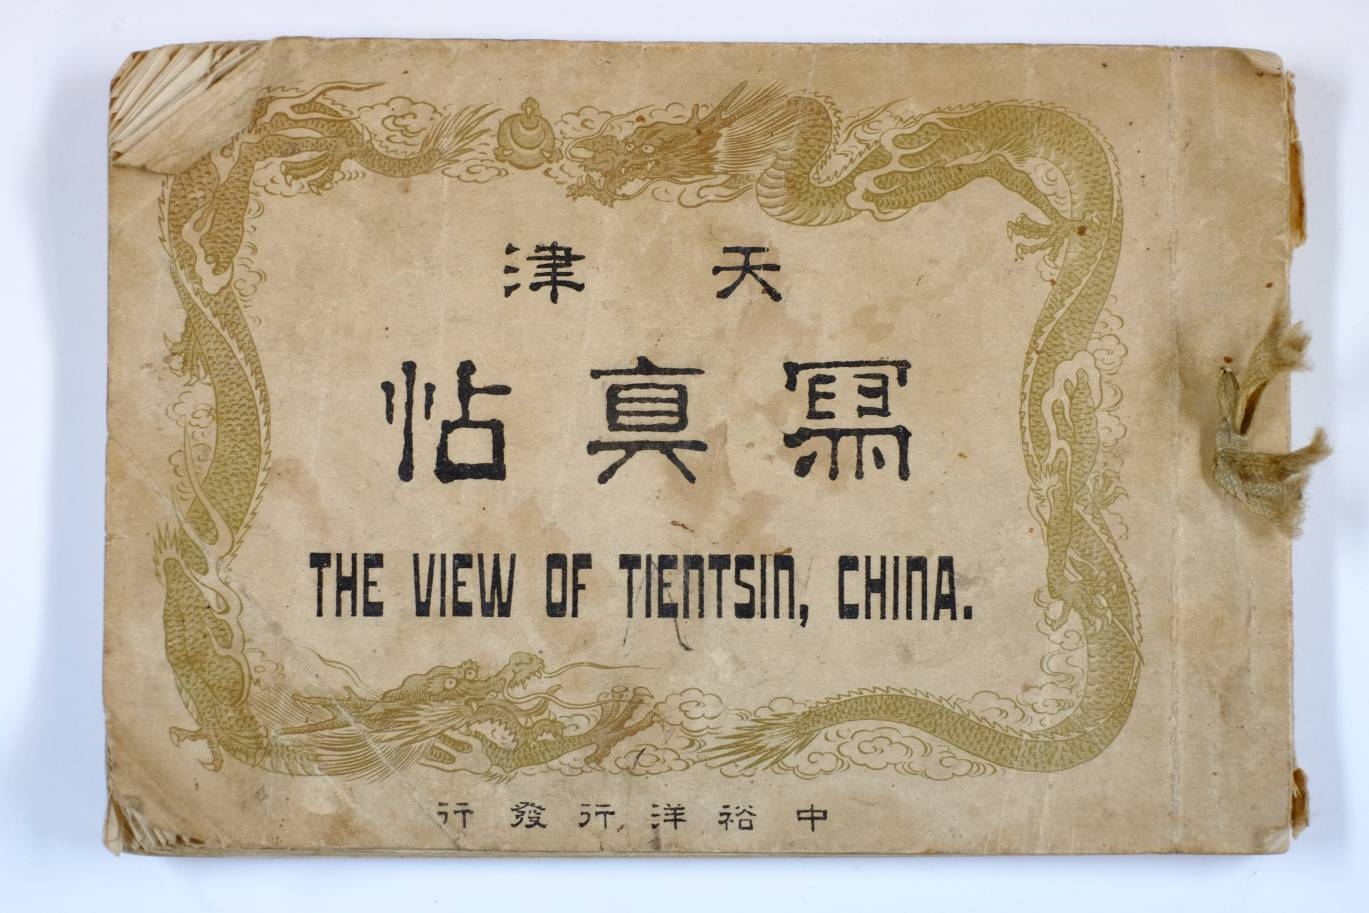 Lot 53 - [Yu, Zhong]. The View of Tientsin, China, [1915], 32 plates from black and white photographs with